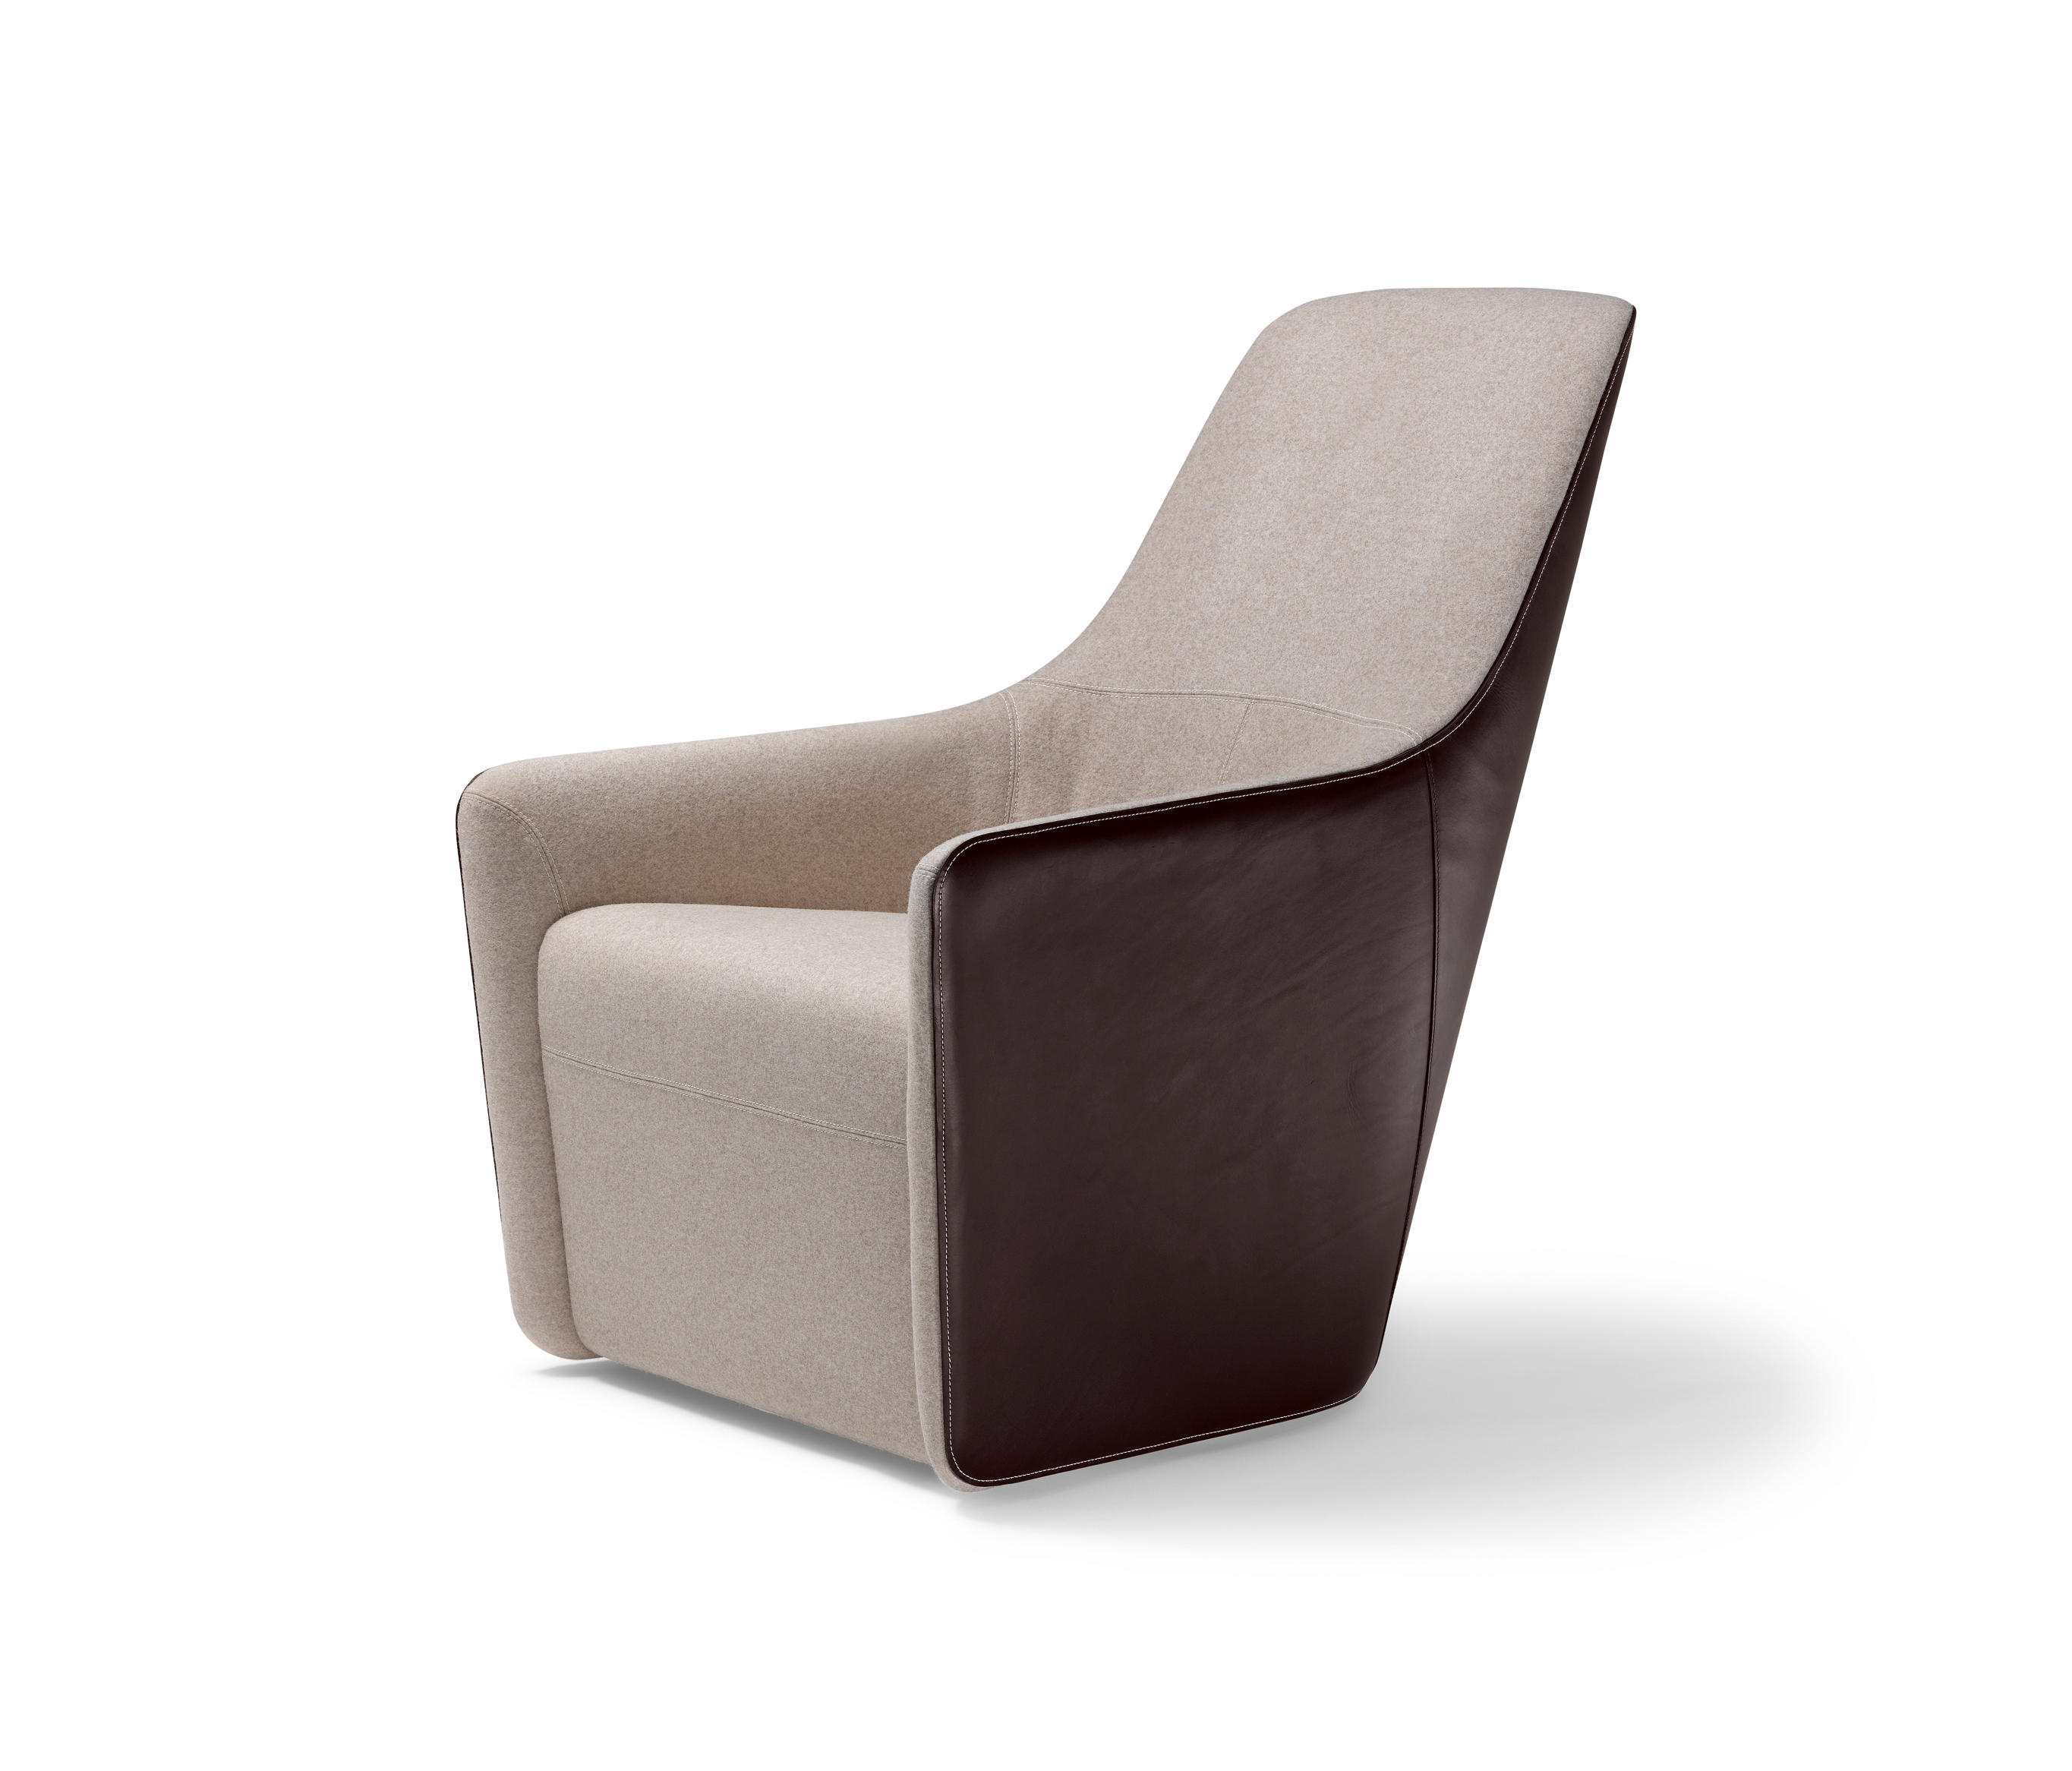 foster 520 armchair lounge chairs from walter knoll. Black Bedroom Furniture Sets. Home Design Ideas